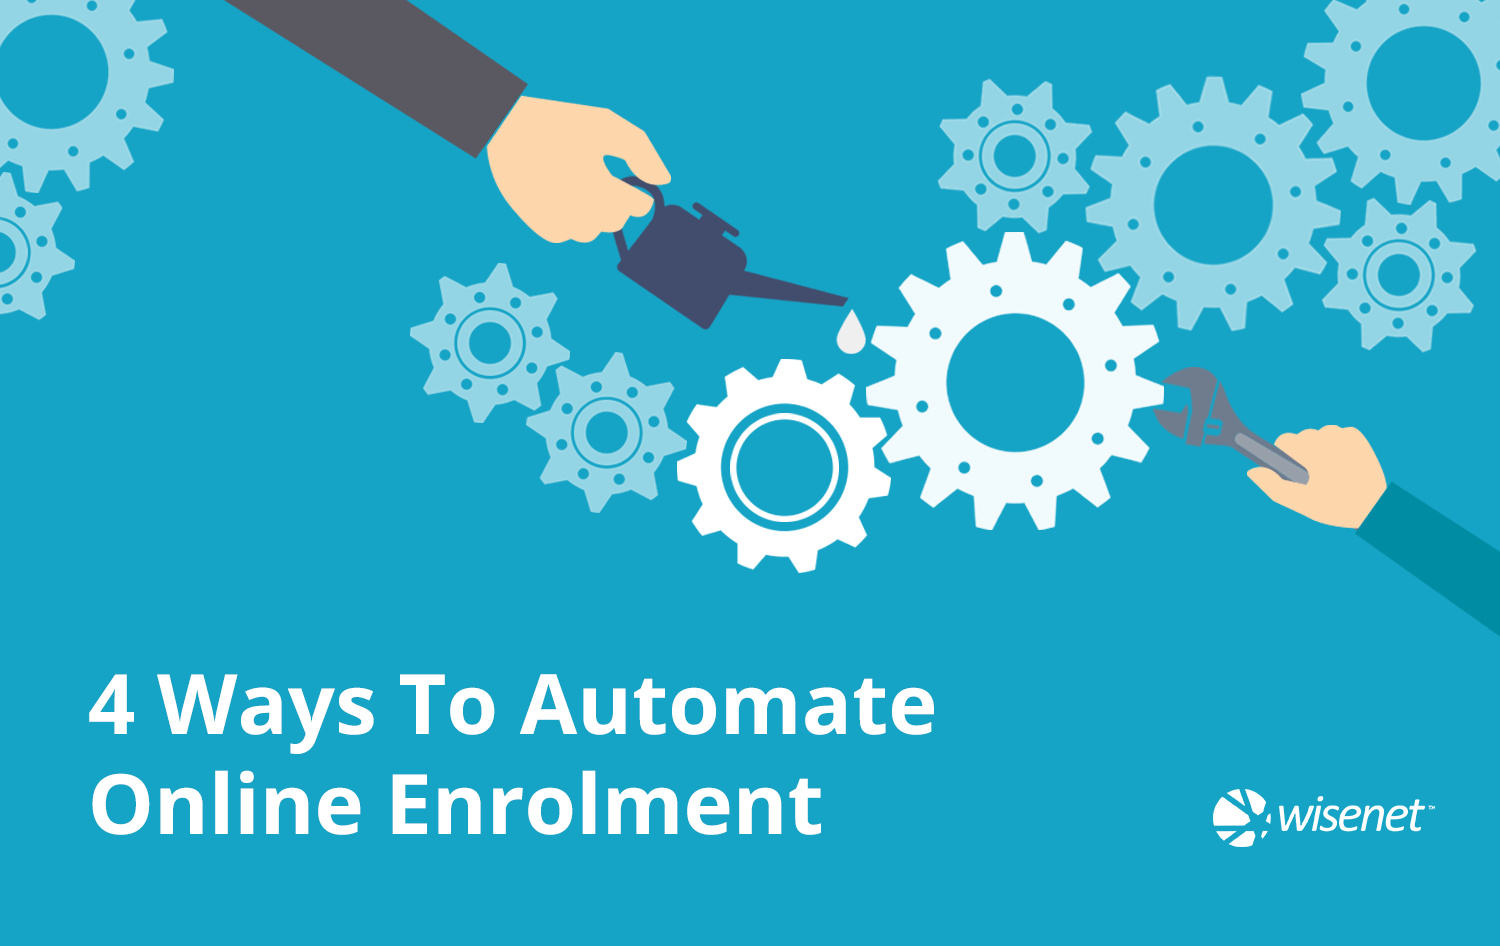 4-Ways-to-Automate-Online-Enrolment_blue_1500x946.png